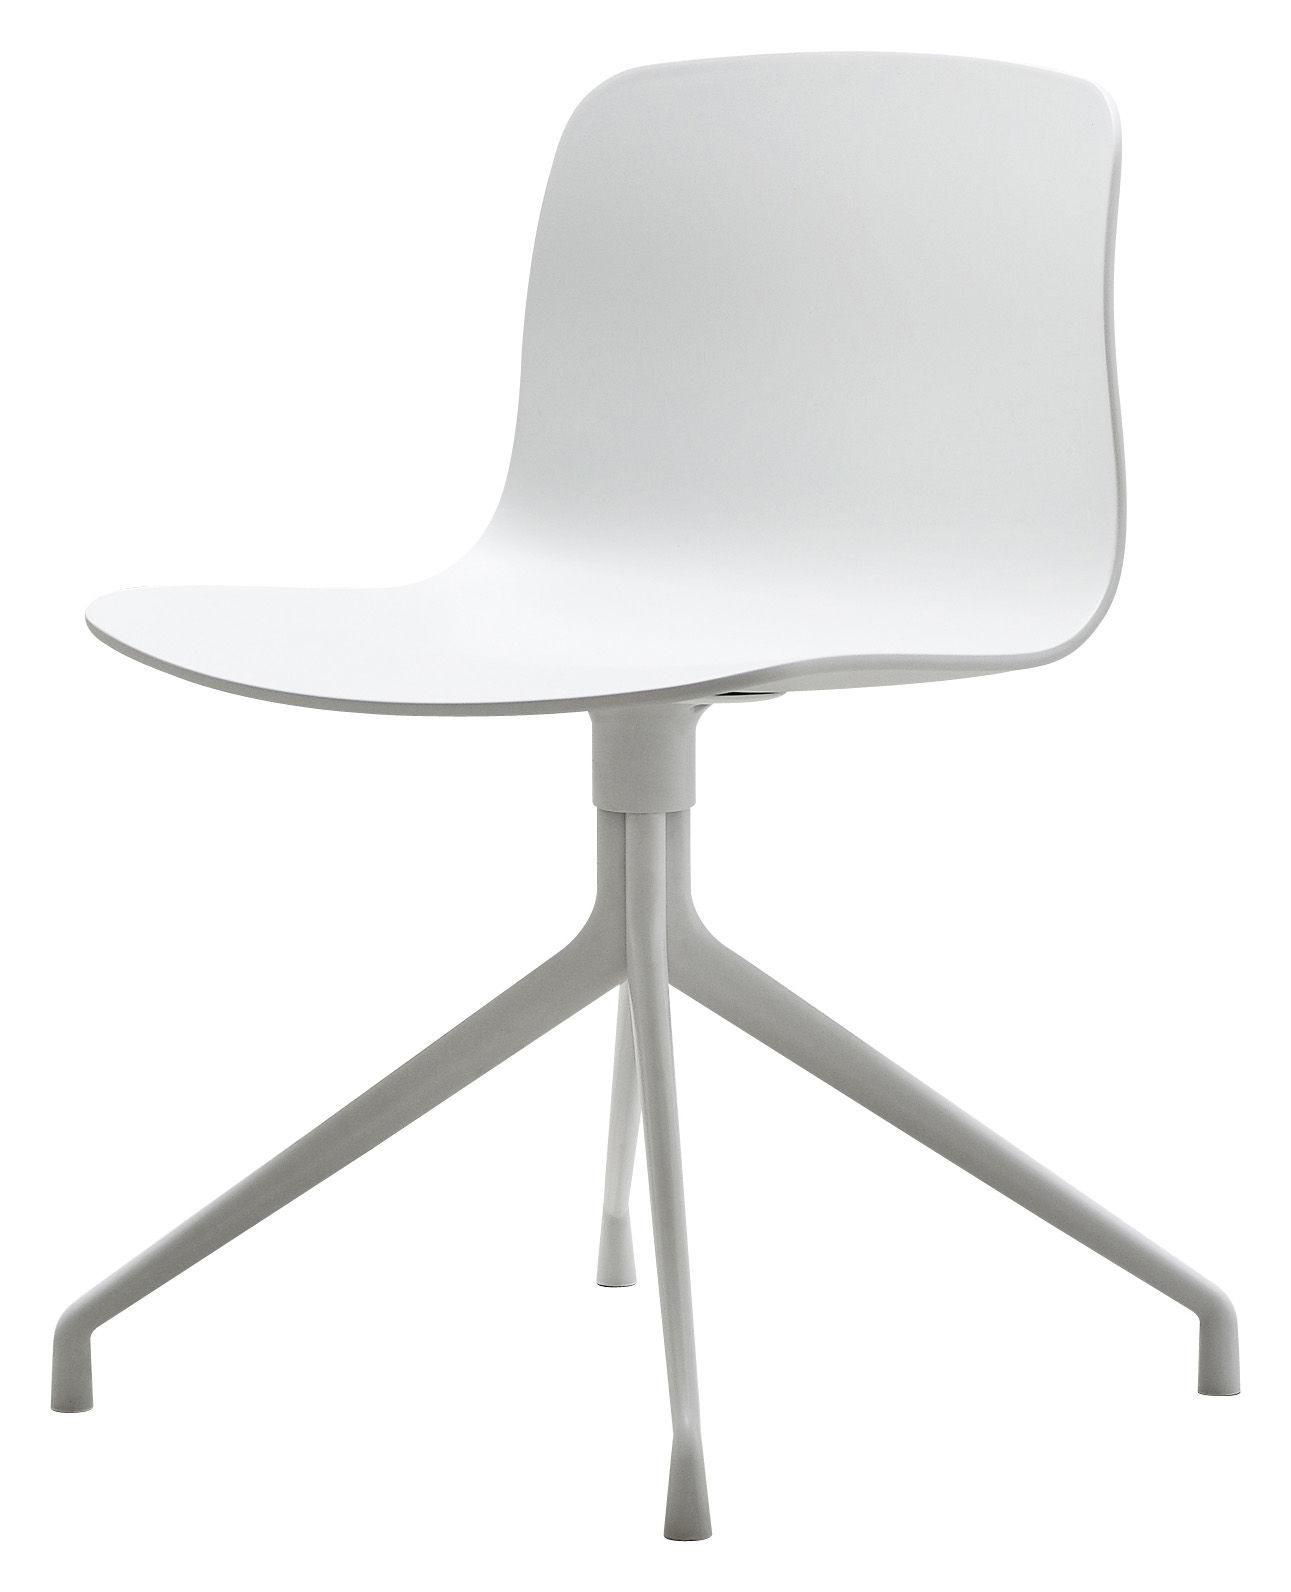 swivel chair feet big joe brio with built in speakers about a by hay white natural wood l 52 x h 4 legs